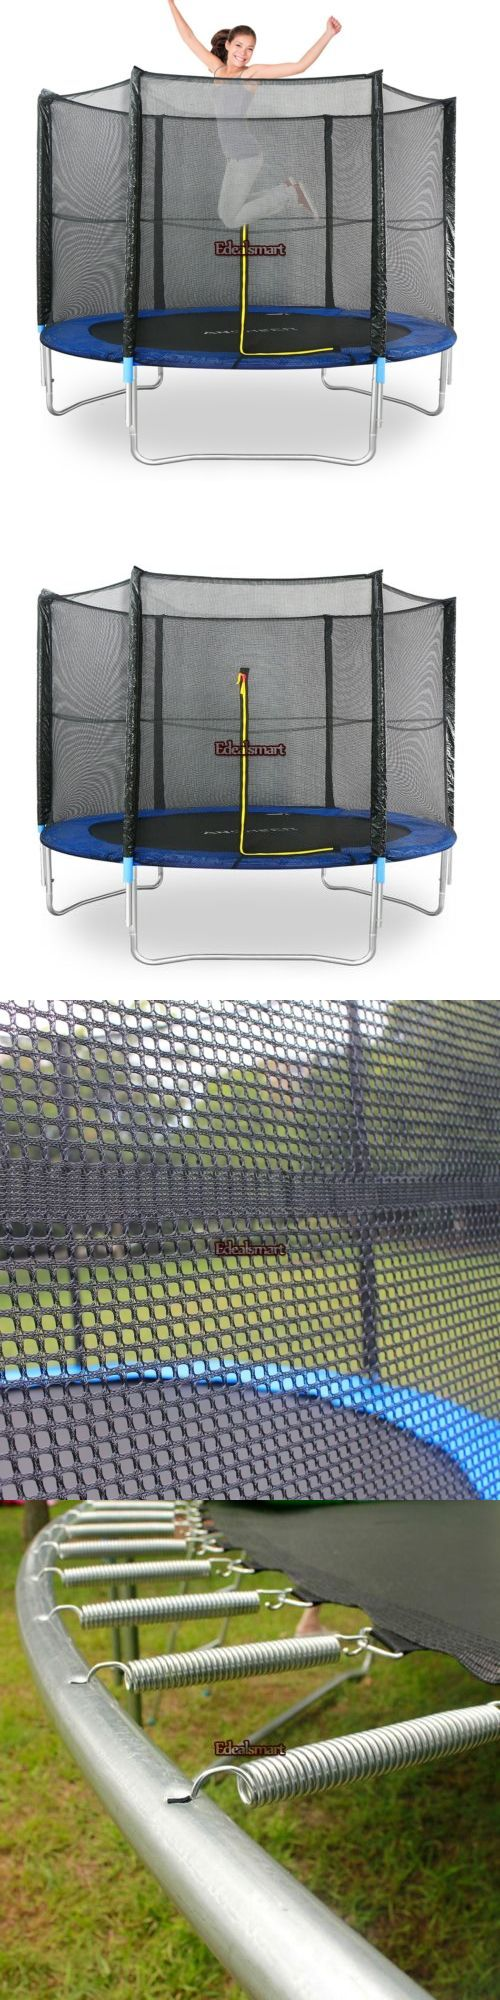 Trampolines 57275: New 10Ft Trampoline Bounce Jump Safety Enclosure Net W/Spring Pad Ladder Popular BUY IT NOW ONLY: $174.03